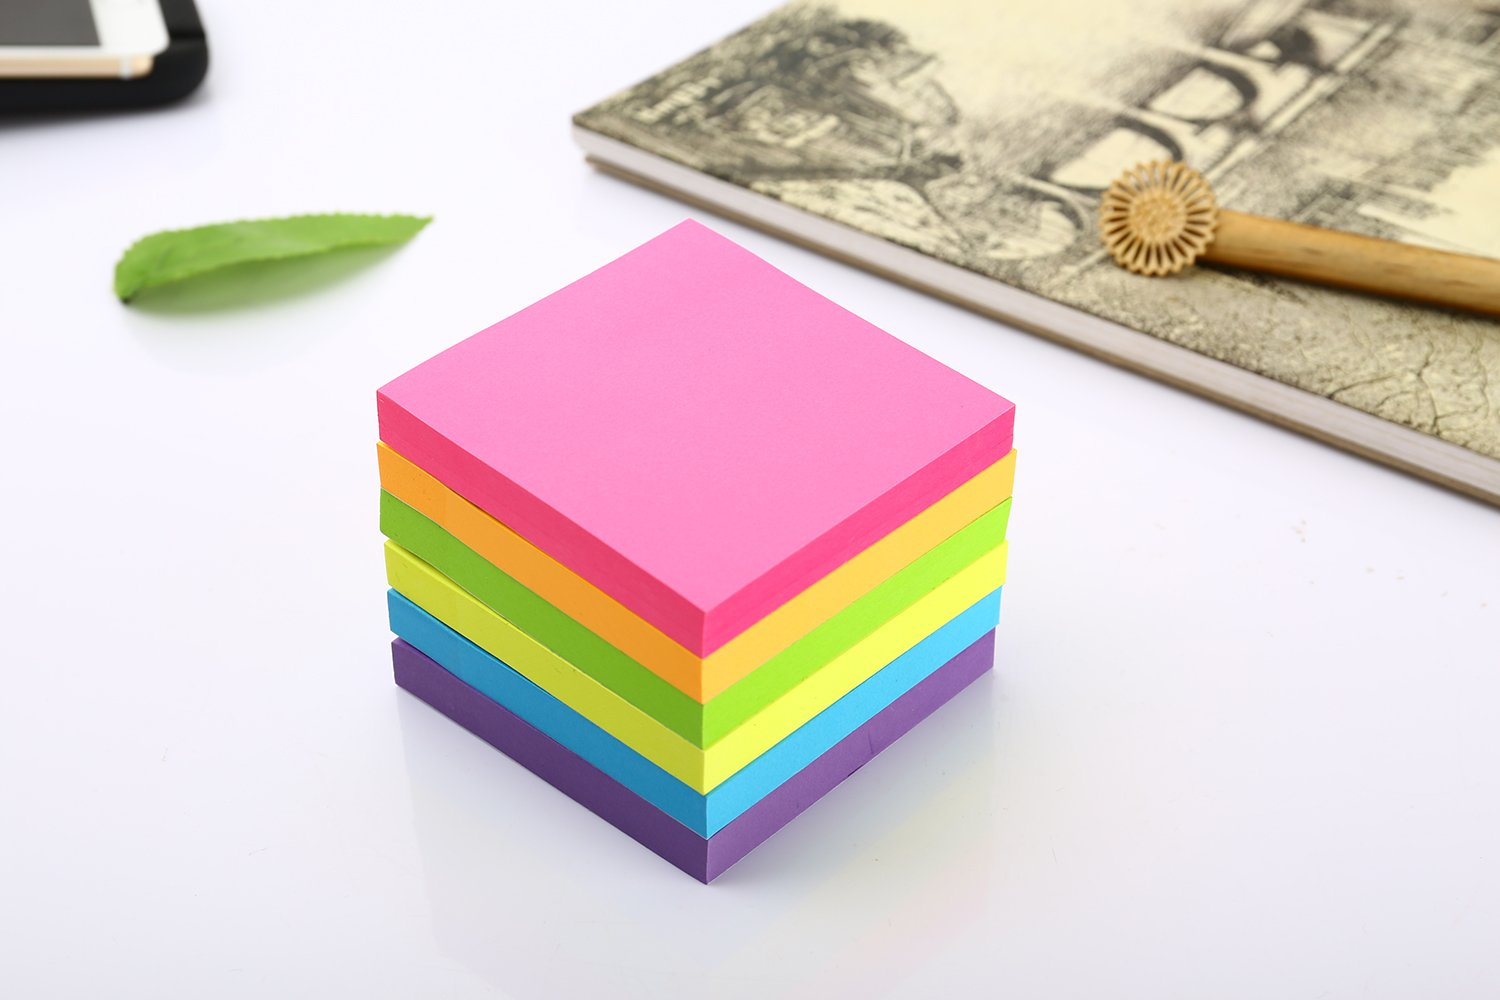 Sticky Notes, 3 in x 3 in, 12 Pads/Pack,100 Sheets/Pad, 6 Bright Colors Self-Stick Notes for Home,Office, School, Easy Post. by ERBAO (Image #3)